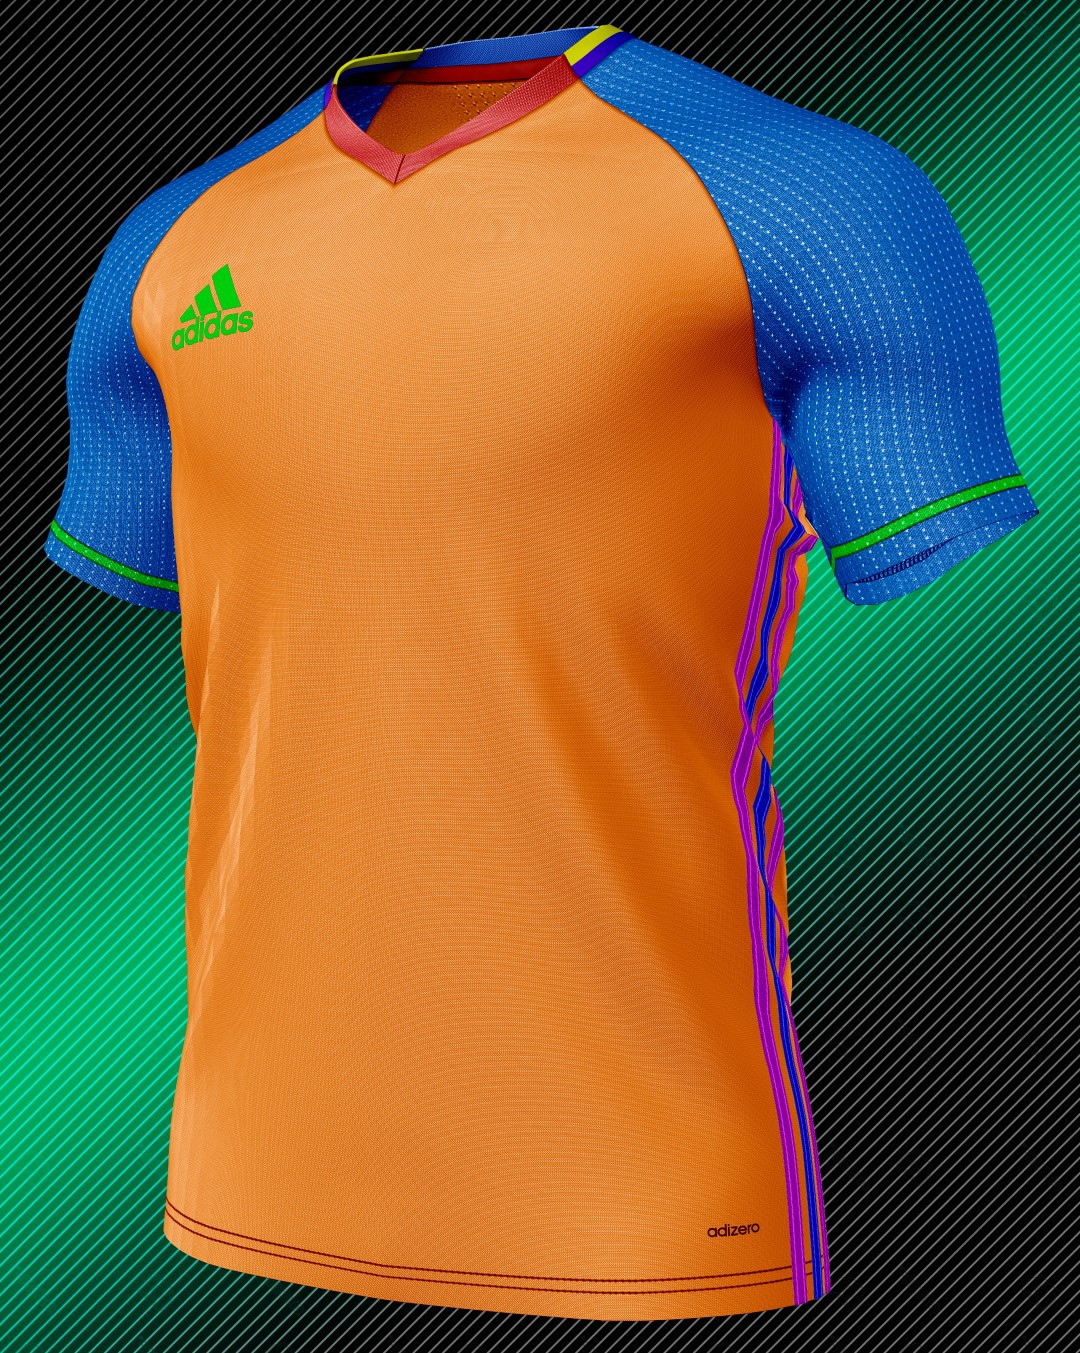 TEMPLATE CAMISETA ADIDAS    DESCARGA GRATIS    HD on Behance 24f9aaec8967c